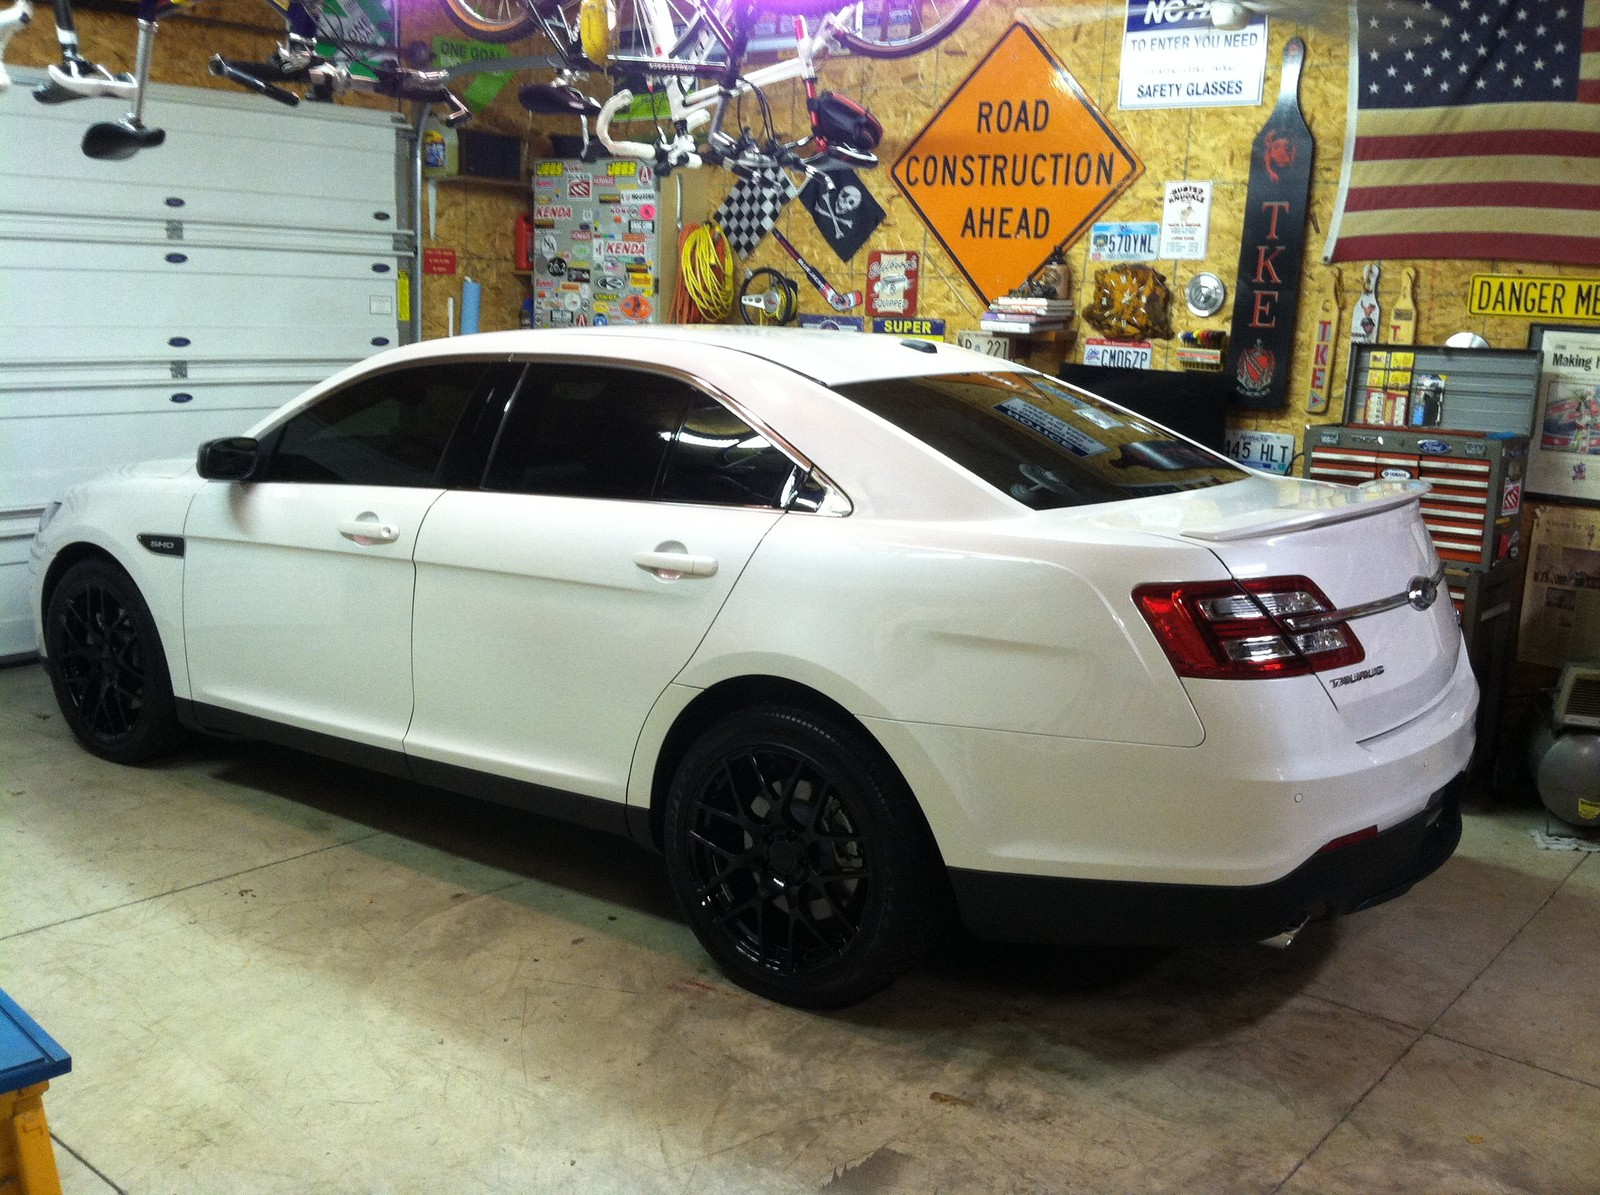 Ford Taurus Sho 0-60 >> 2013 Ford Taurus Sho 1 4 Mile Trap Speeds 0 60 Dragtimes Com